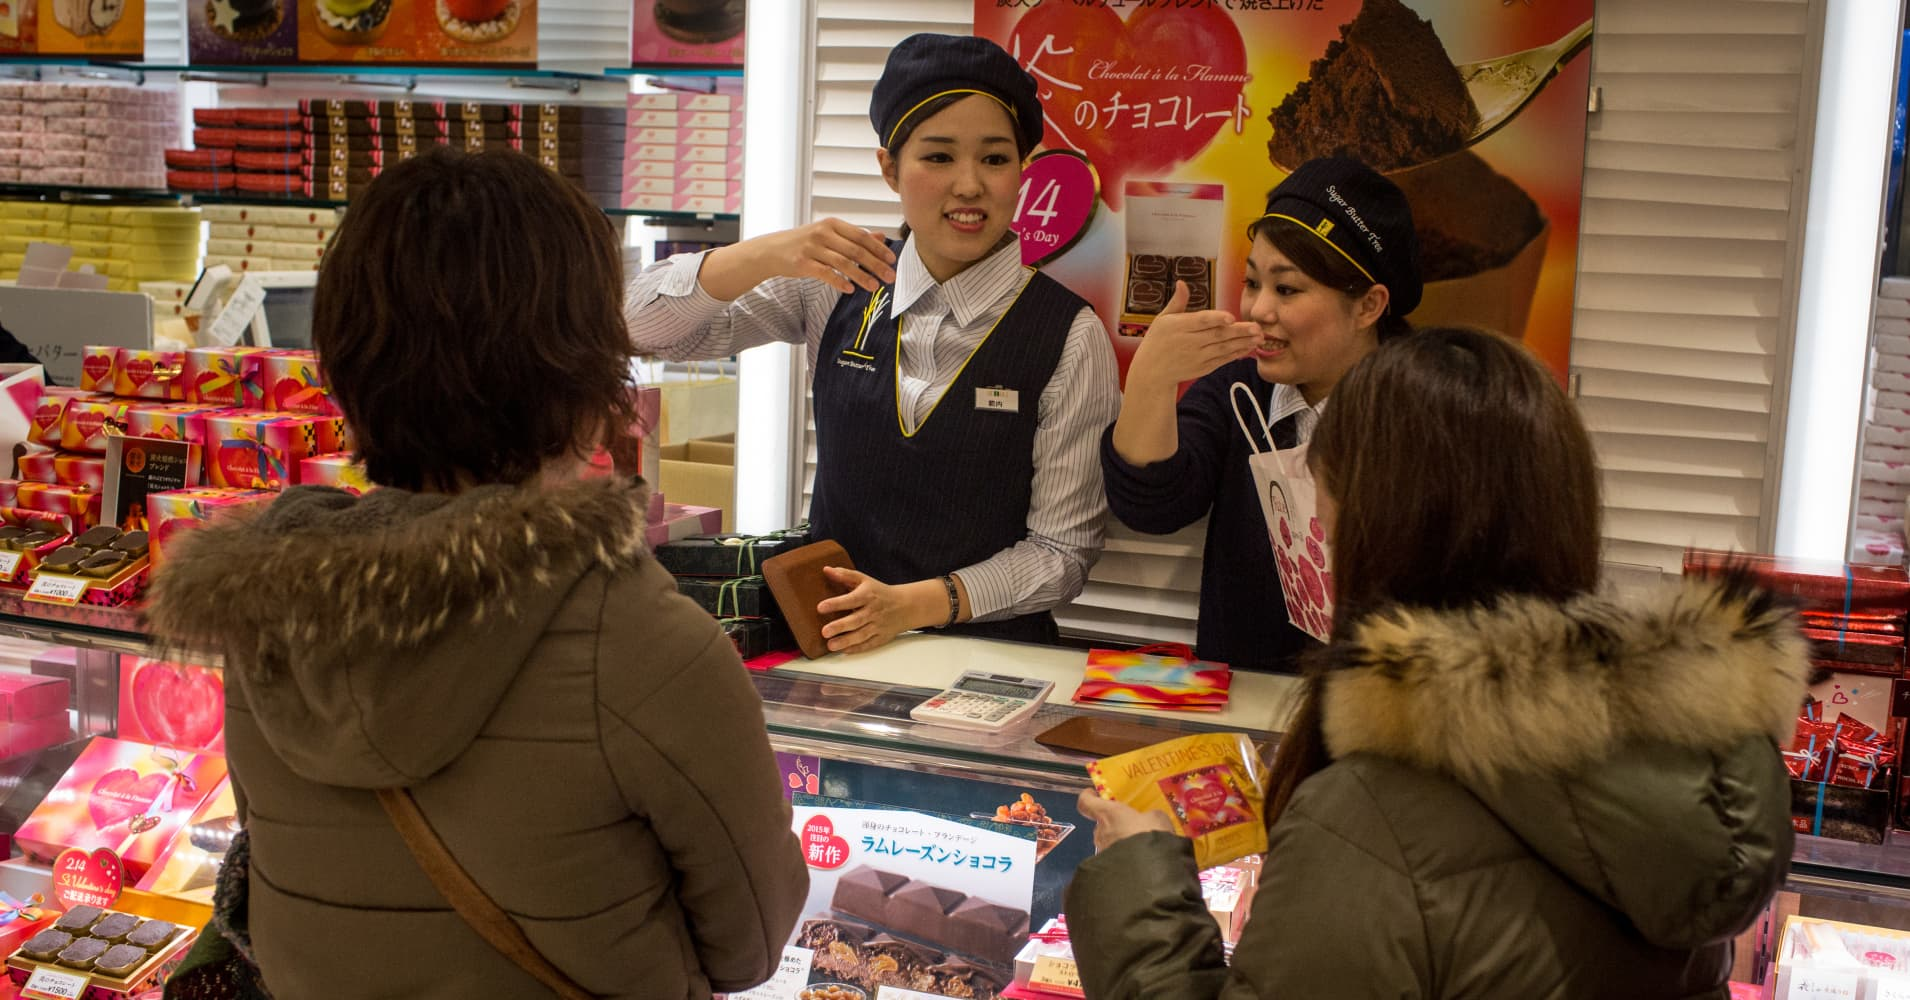 Japanese women challenge Valentine's Day tradition of giving chocolate to male coworkers